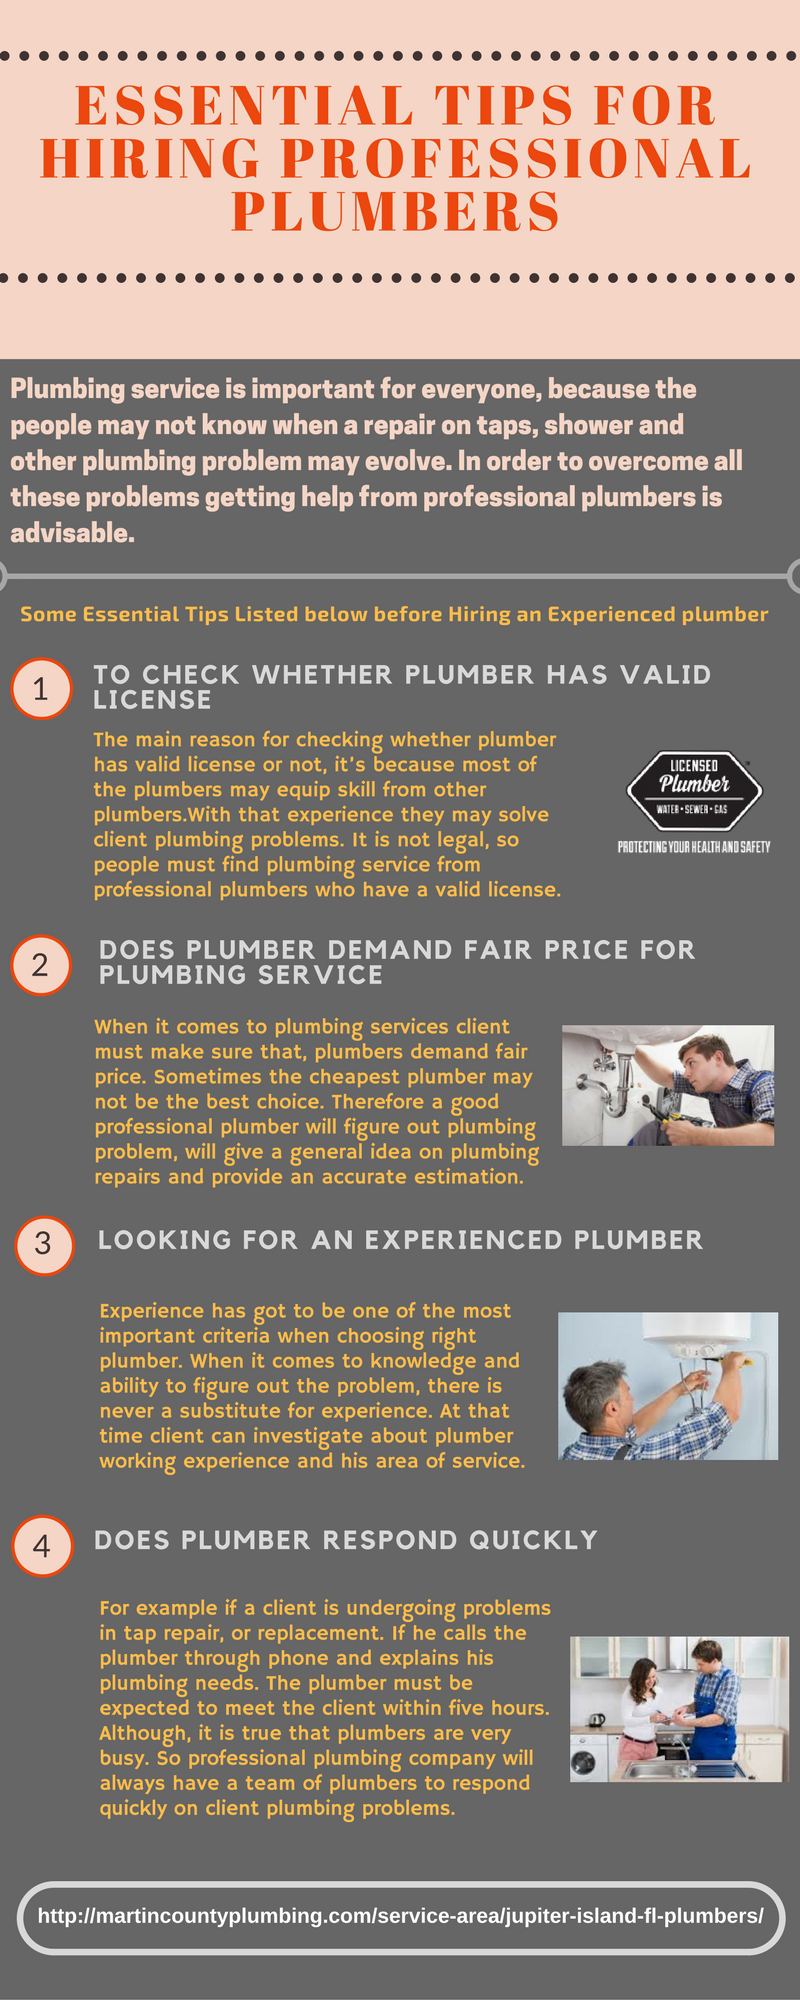 Essential Tips for Hiring Professional Plumbers